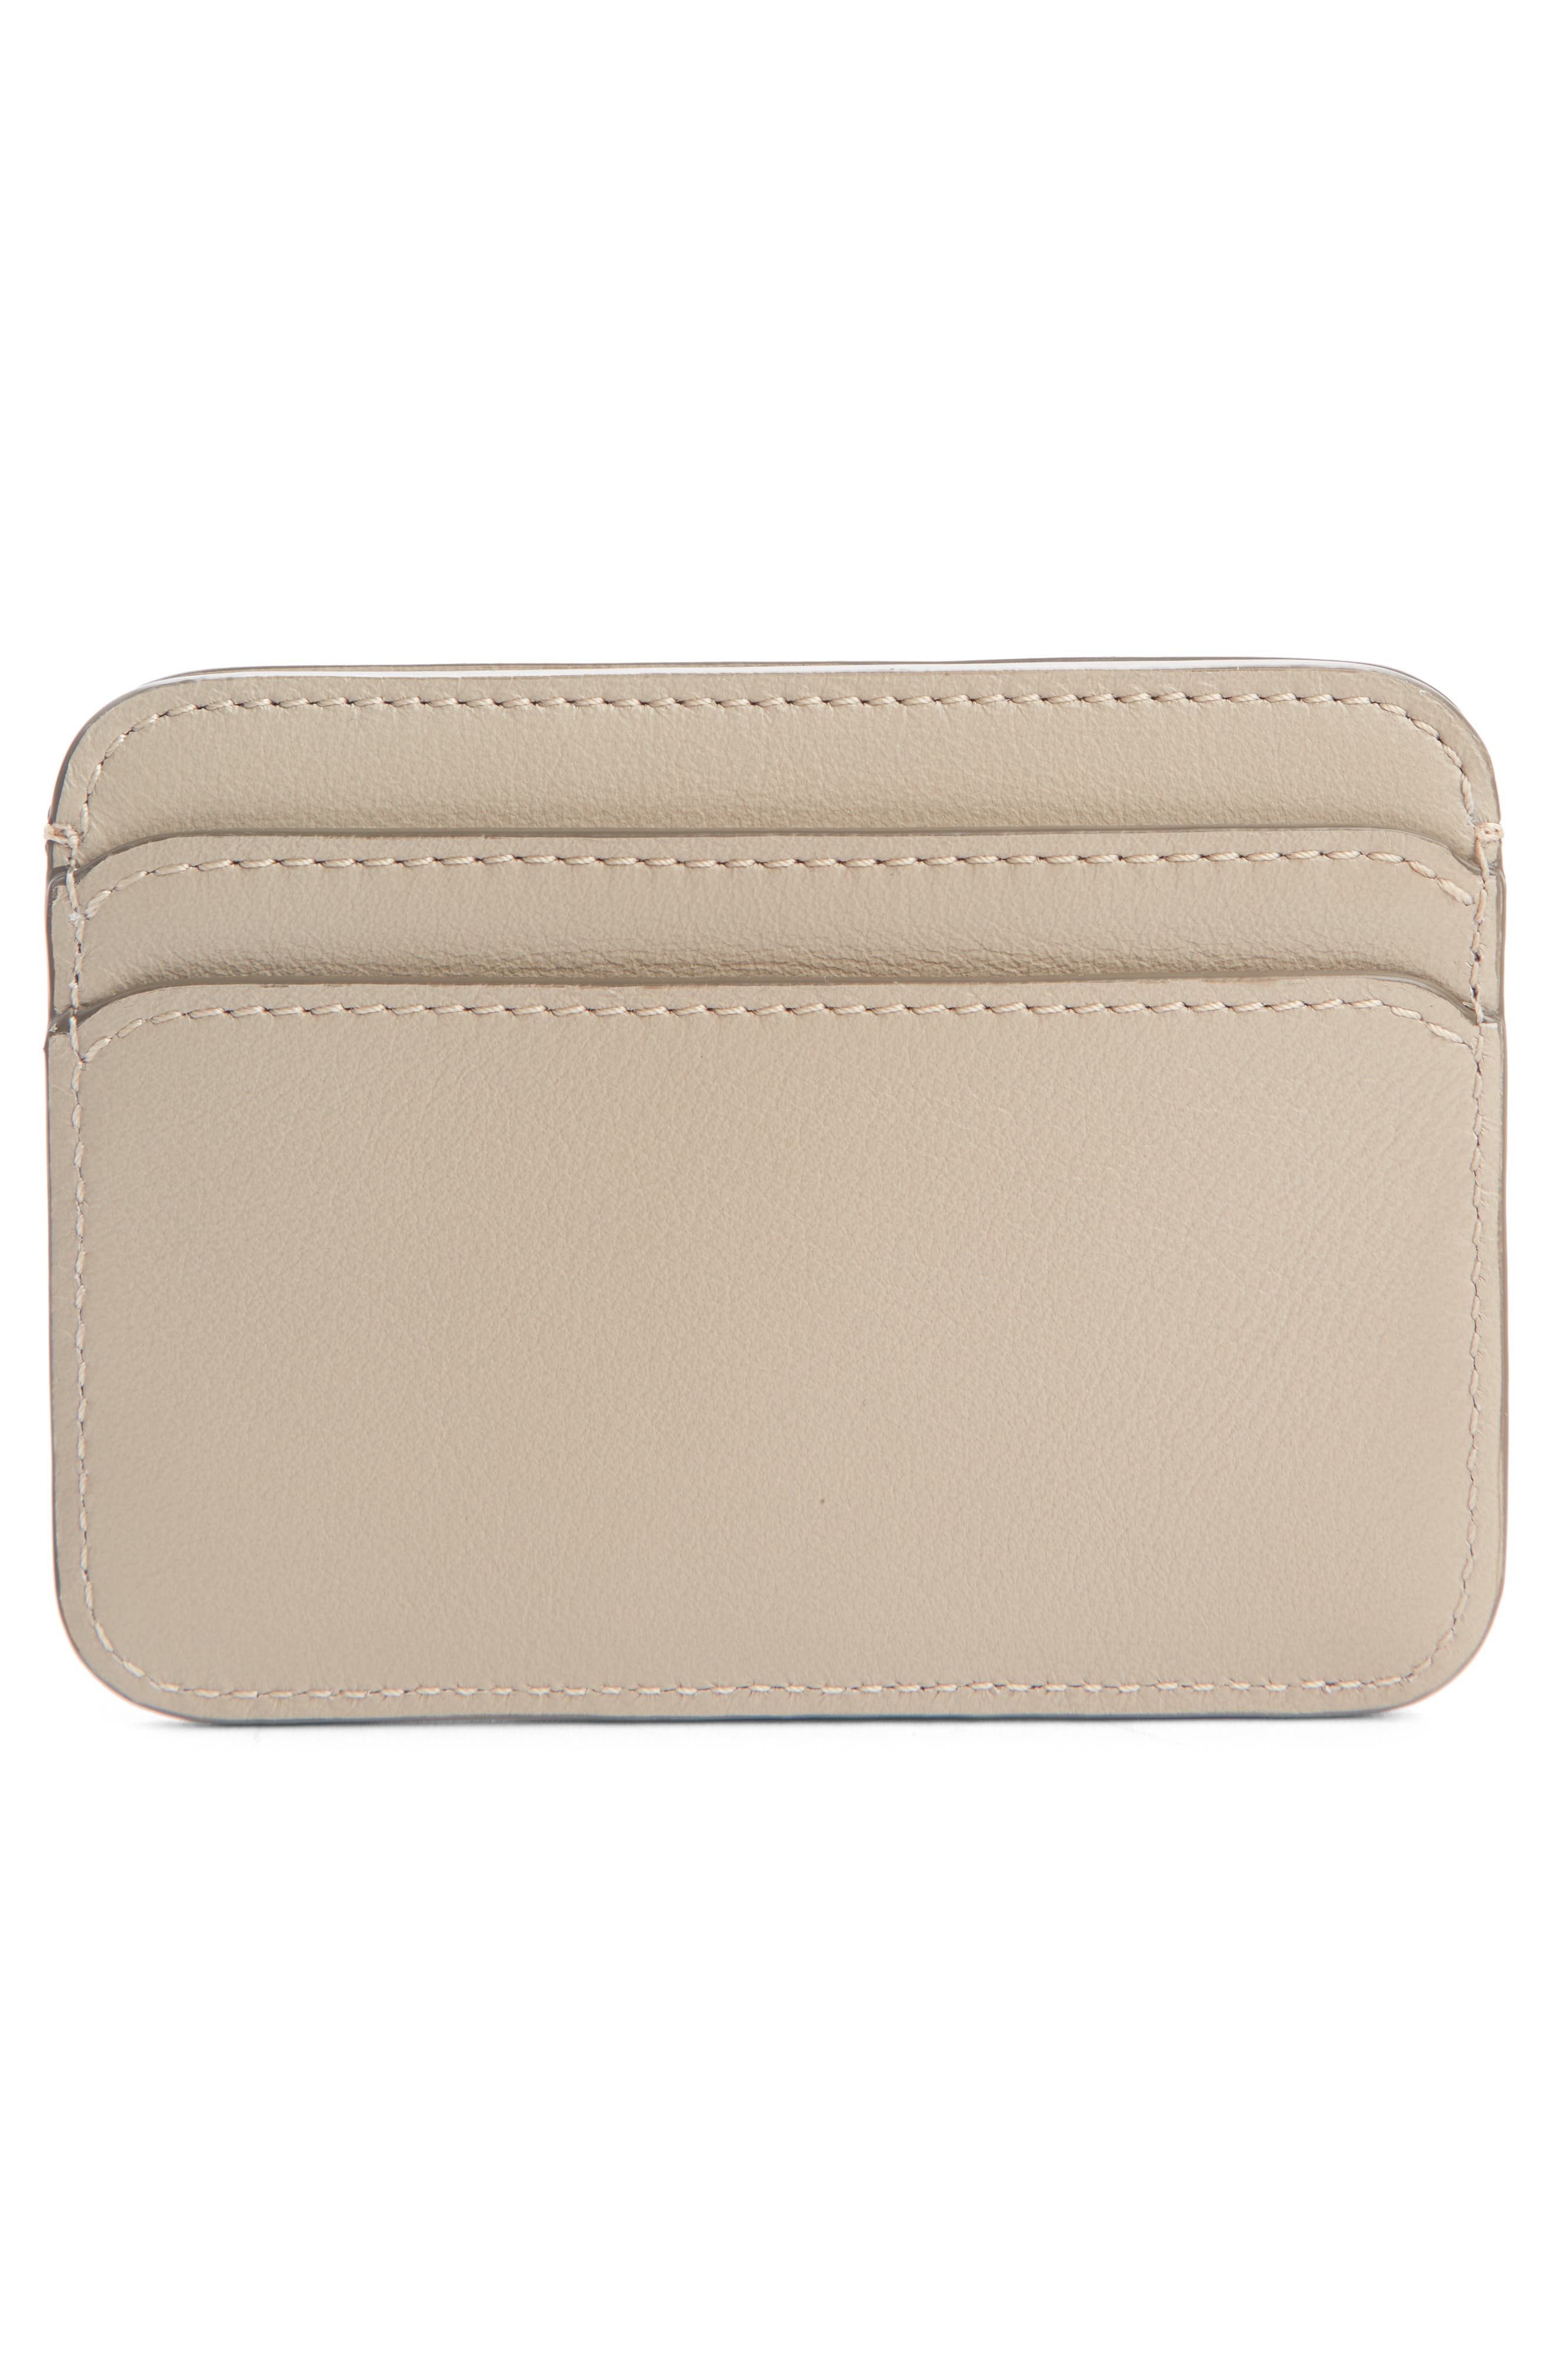 ,                             Vick Logo Leather Card Holder,                             Alternate thumbnail 2, color,                             PASTEL GREY